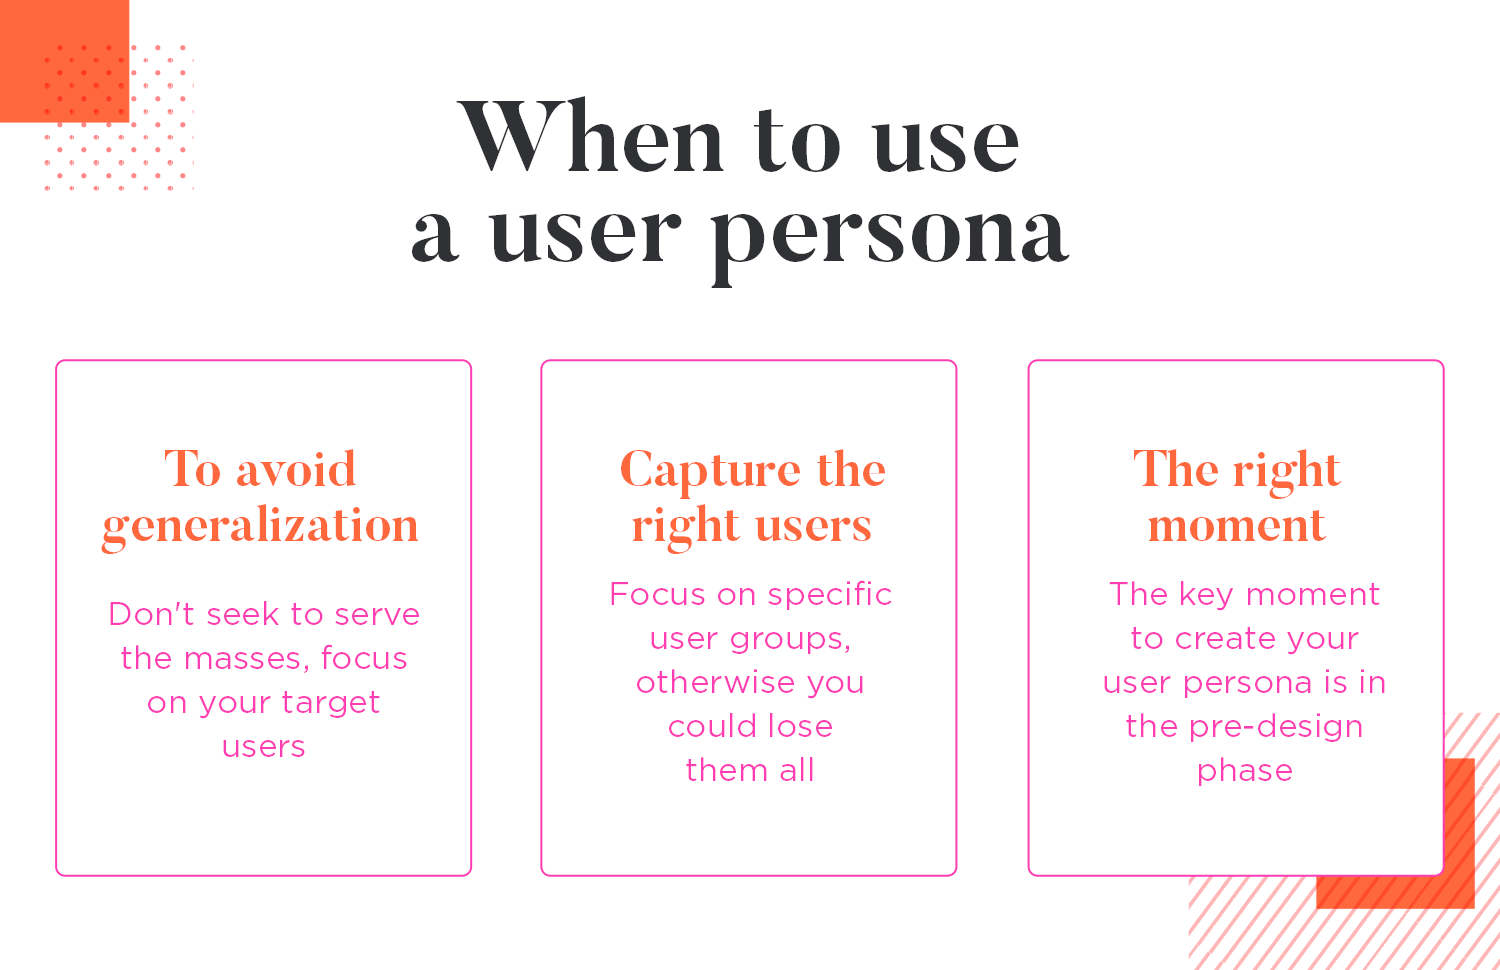 When to use a user persona